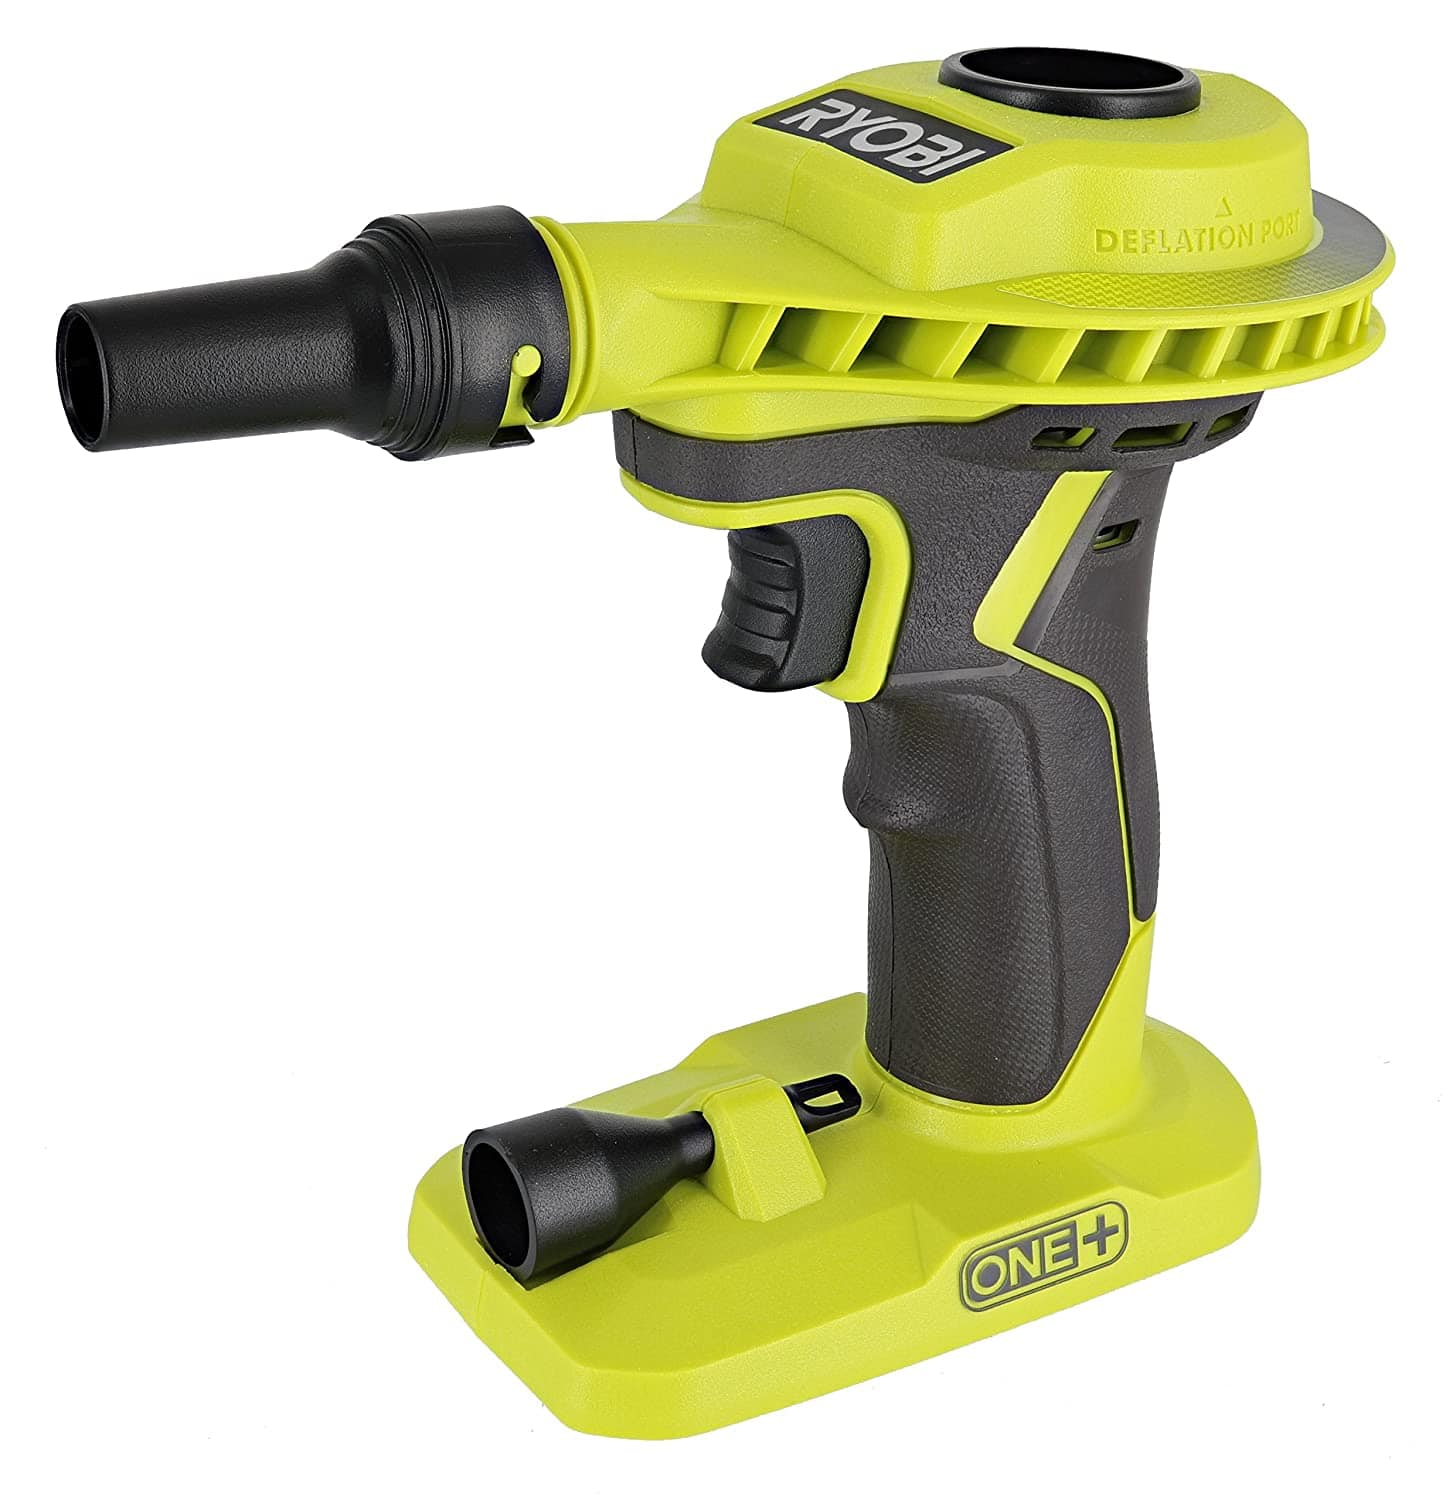 Ryobi 18-Volt ONE+ Cordless High Volume Power Inflator (Tool Only) (P738) - $19.97